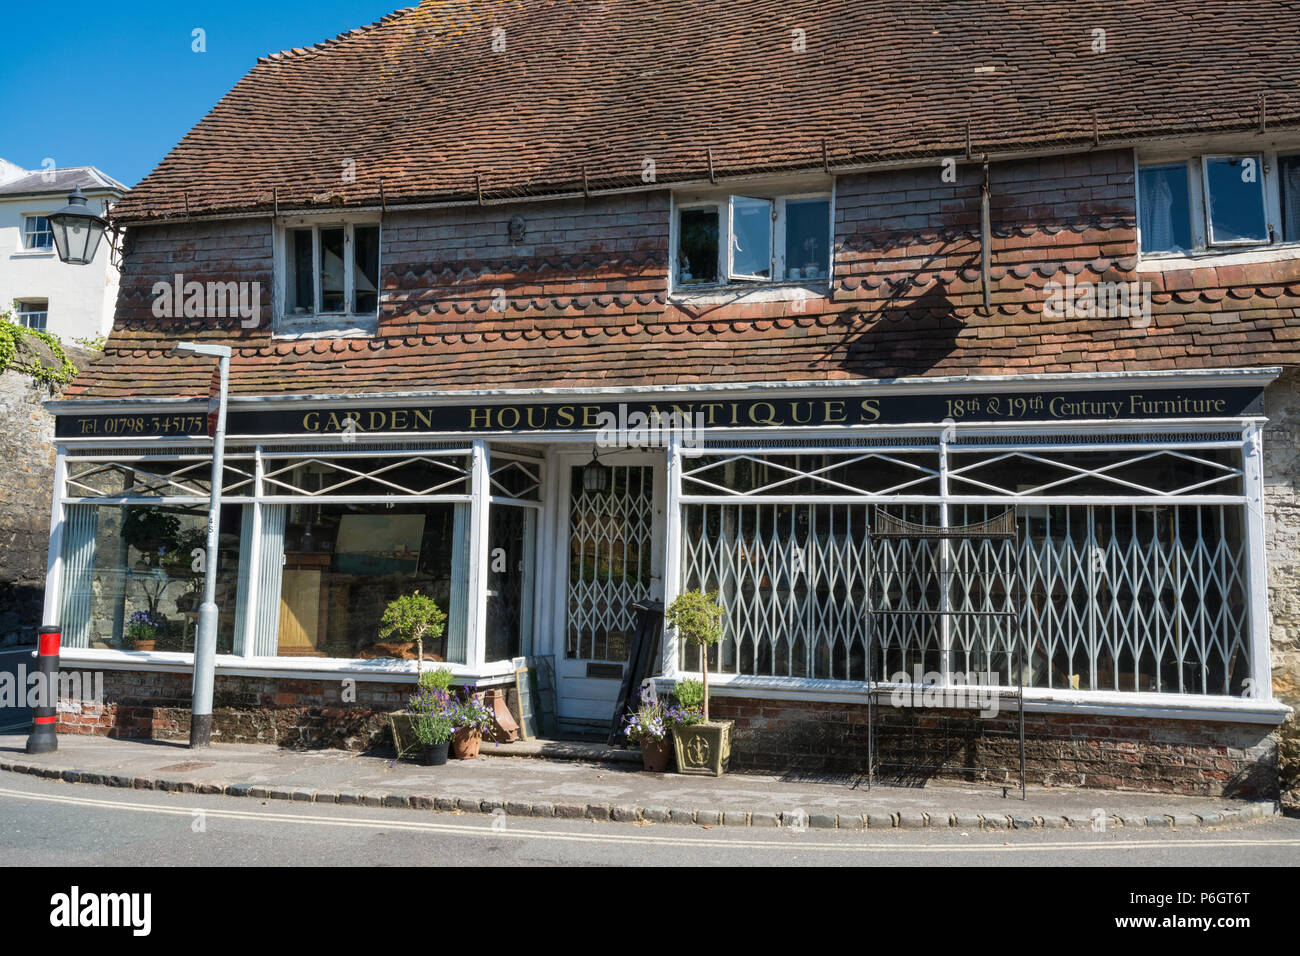 Shop Town West Sussex Imágenes De Stock & Shop Town West Sussex ...